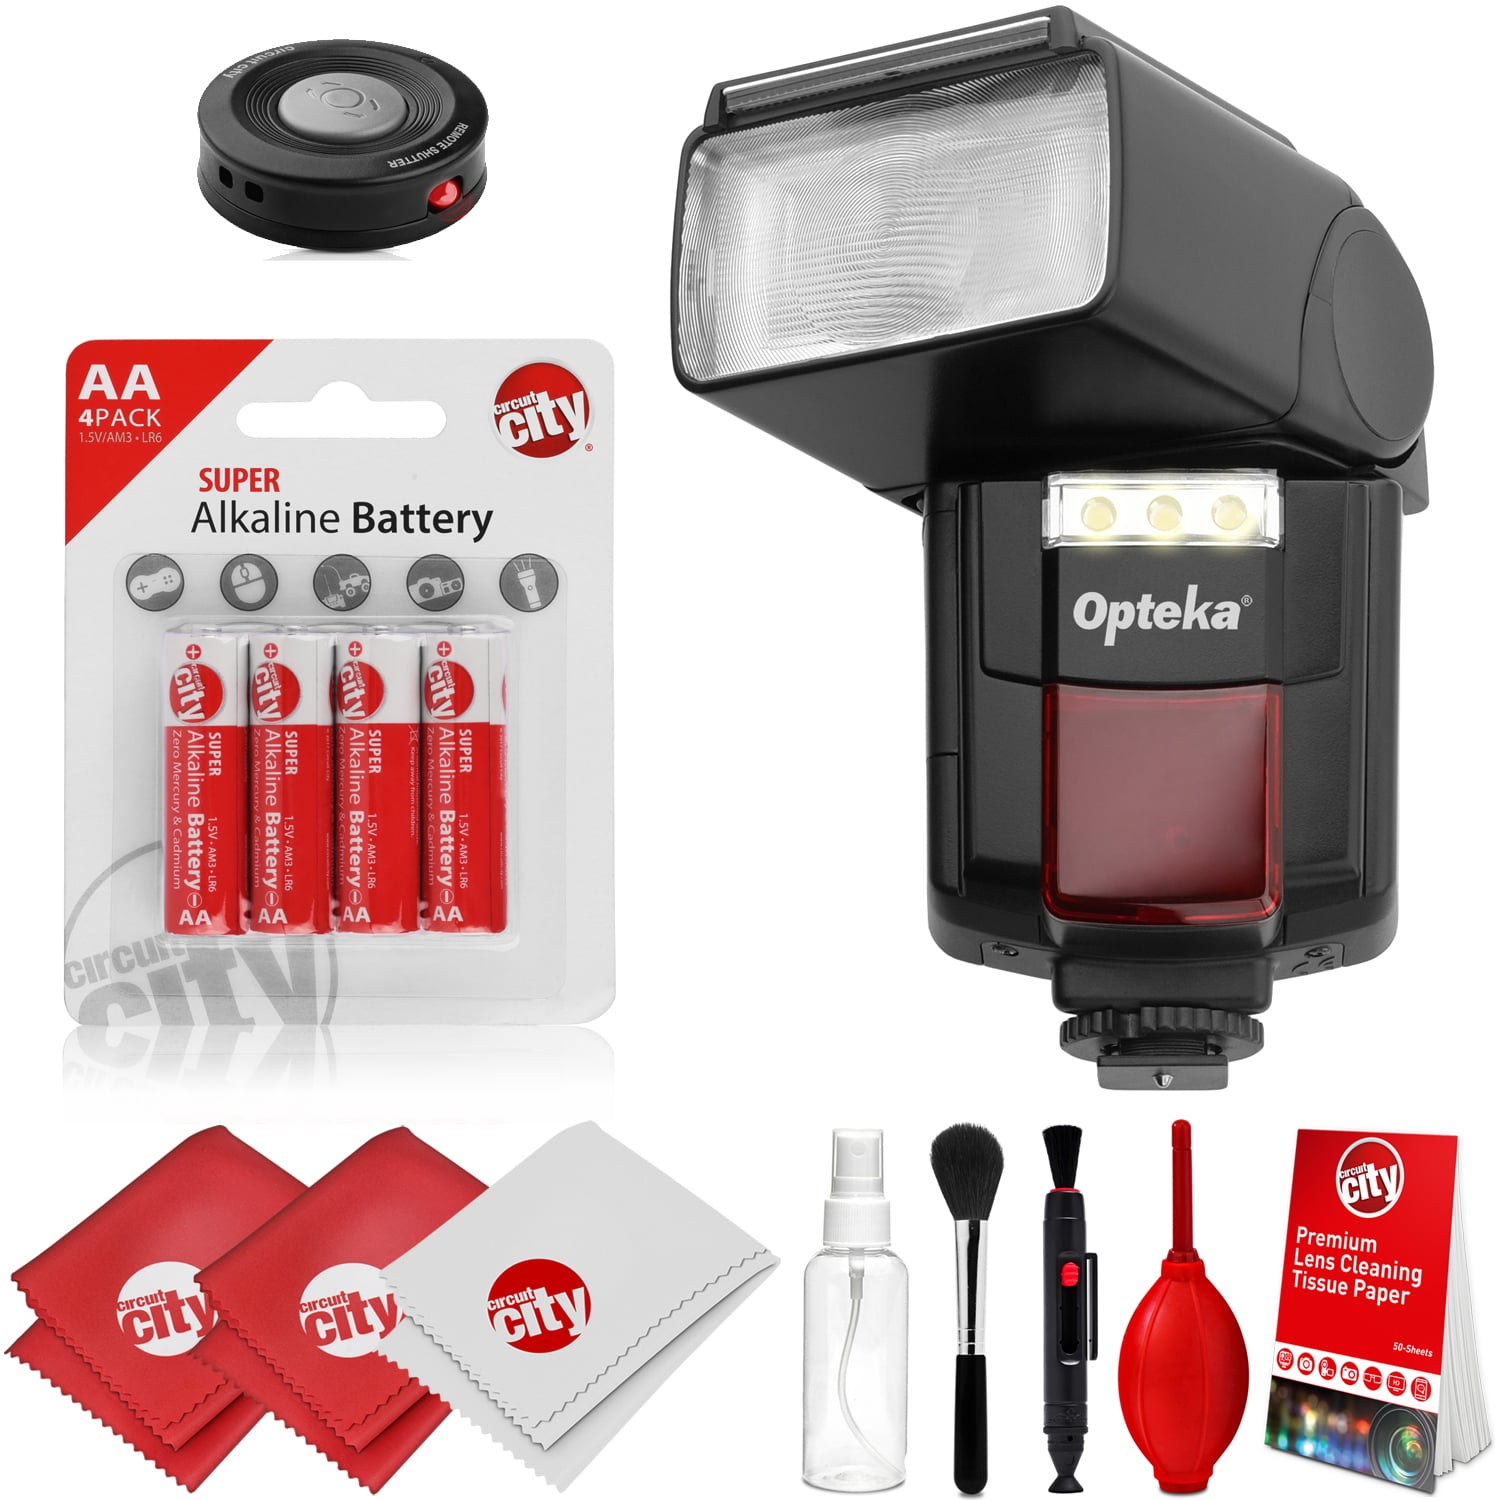 Opteka IF-800 Autofocus Speedlight Flash with Built-In LED Video Light w/  IR Remote + Cleaning Kit for Canon 80D, 77D, 70D, 7D, 6D, 5D, T7i, T7s,  T6i,